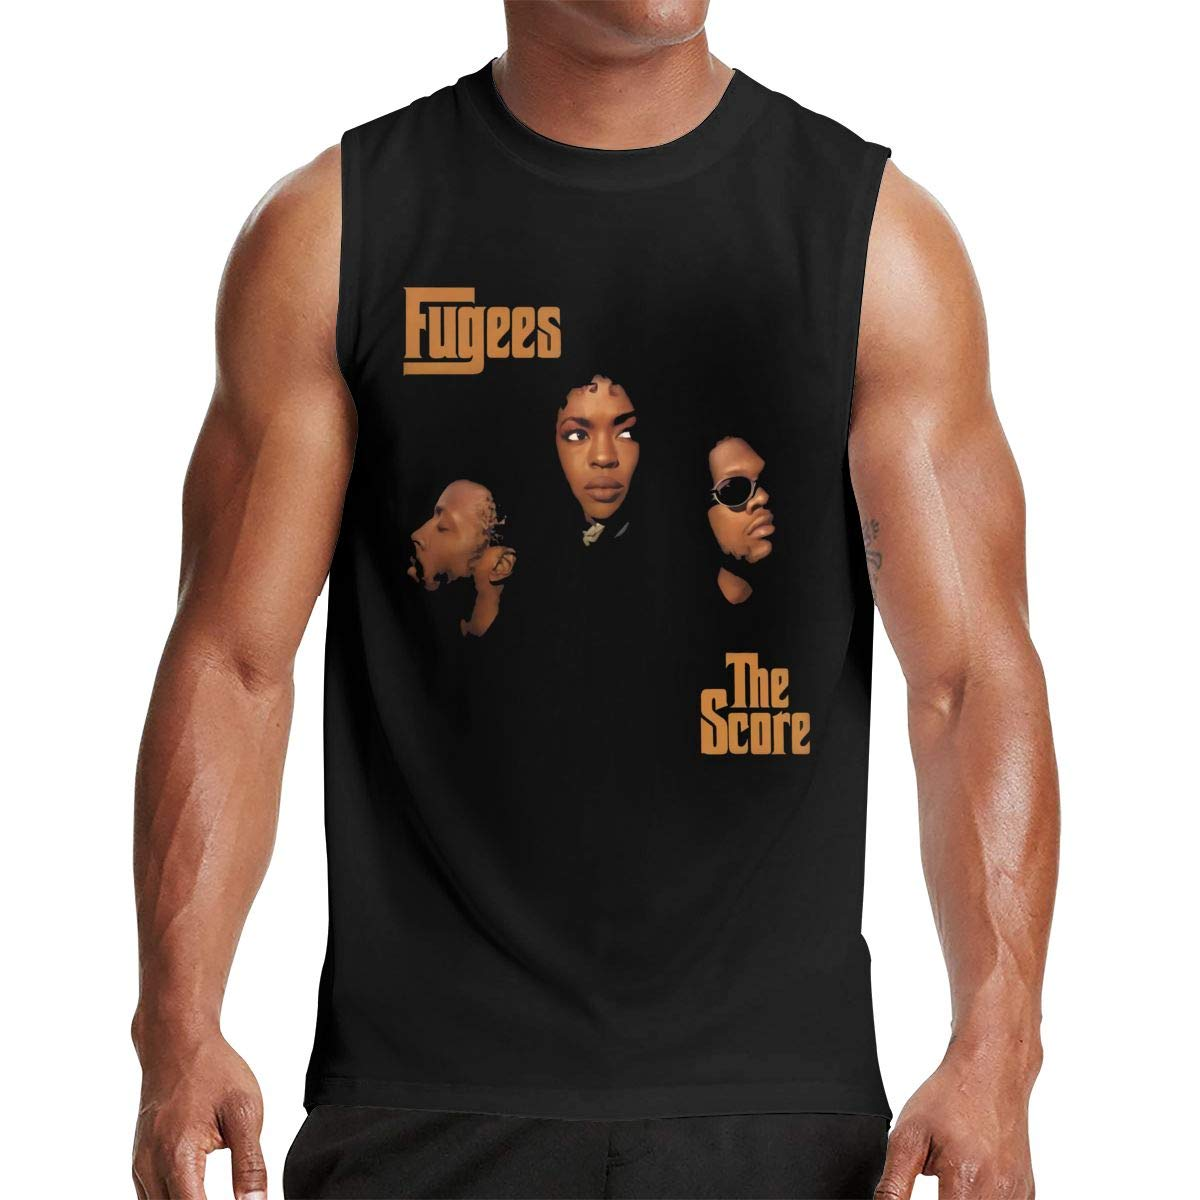 Thomlarryca Fugees The Score S Gym Muscle T Shirt Classic Athletic Sleeveless T Shirts